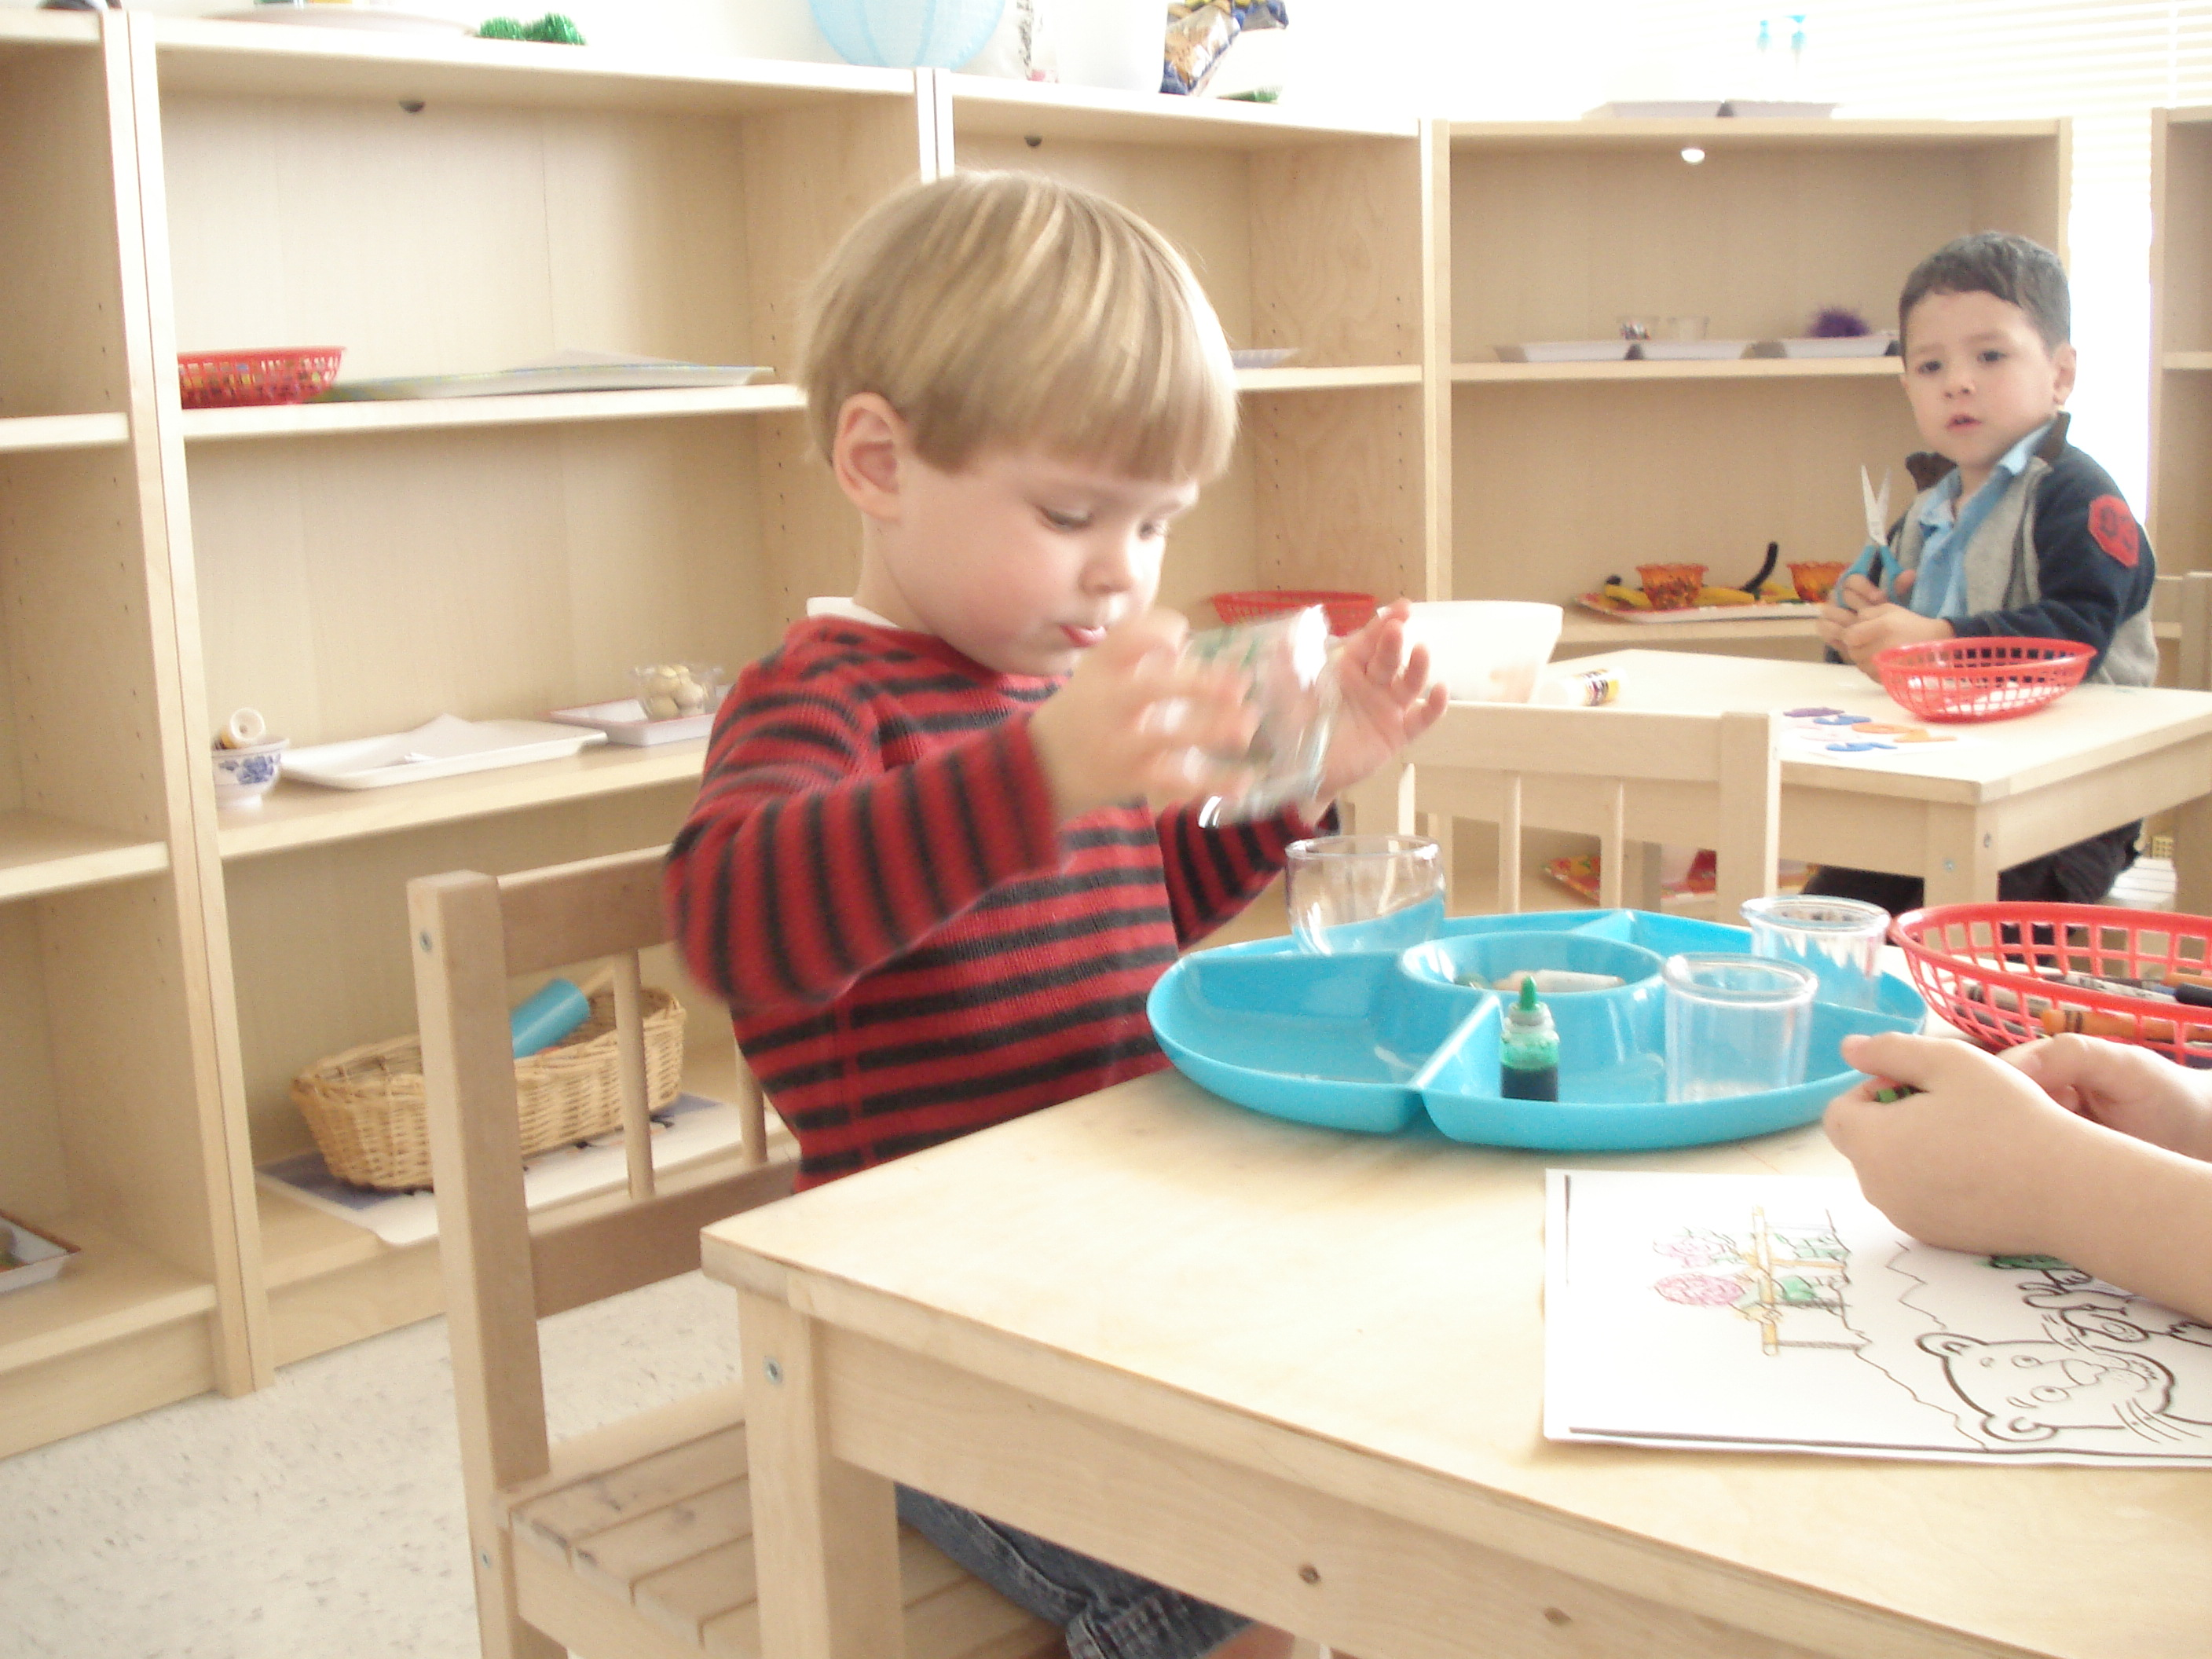 symbiotic period montessori The association montessori internationale was founded in 1929 by dr maria montessori in order to further the rights of the child in society and protect the integrity of the montessori method of education.